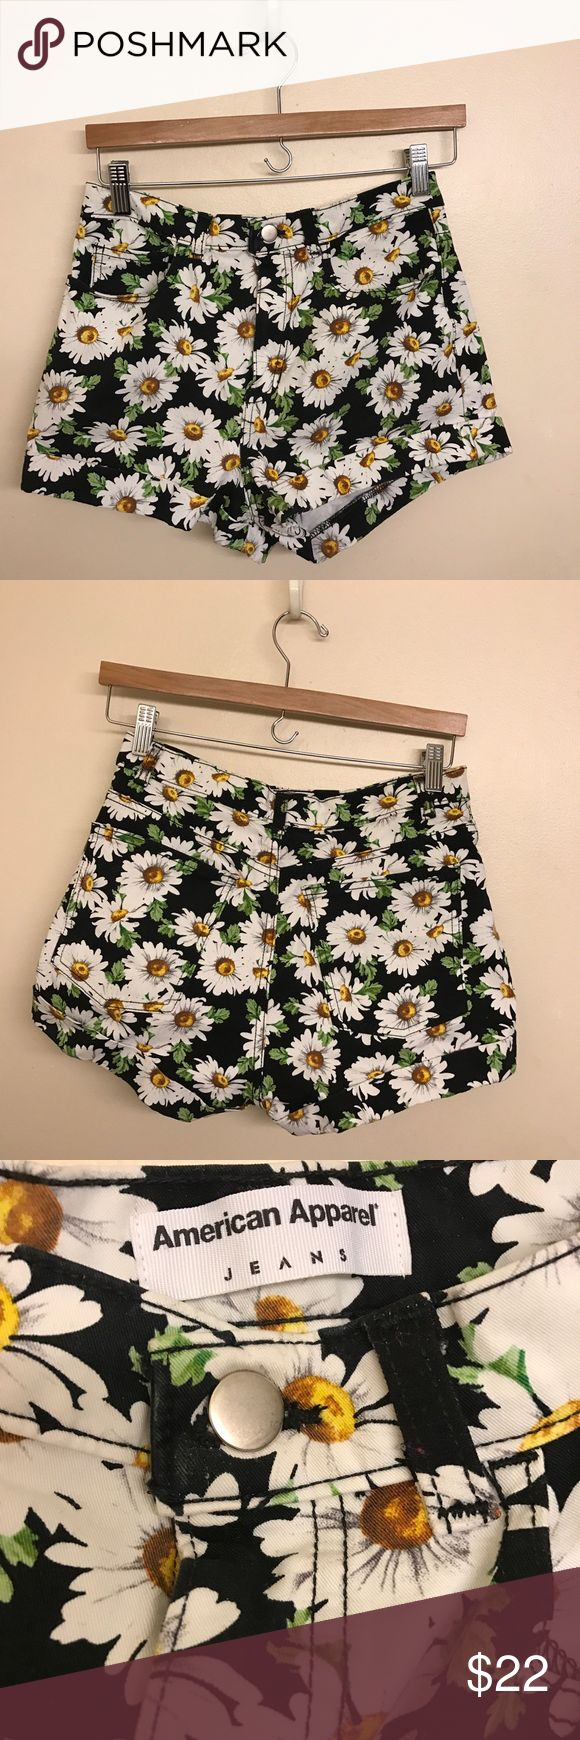 """American Apparel Black Daisy Shorts This is a pair of American Apparel high waisted daisy printed shorts. These are really sturdy and made of high quality material. The size is 28"""" which is around a size 4-6 in women's US sizes. These shorts are super comfy and are made of an awesome stretchy material. I love these shorts but unfortunately I've only used them once and they no longer fit. They remain in perfect condition, like new. This statement piece is perfect for any badass' wardrobe…"""